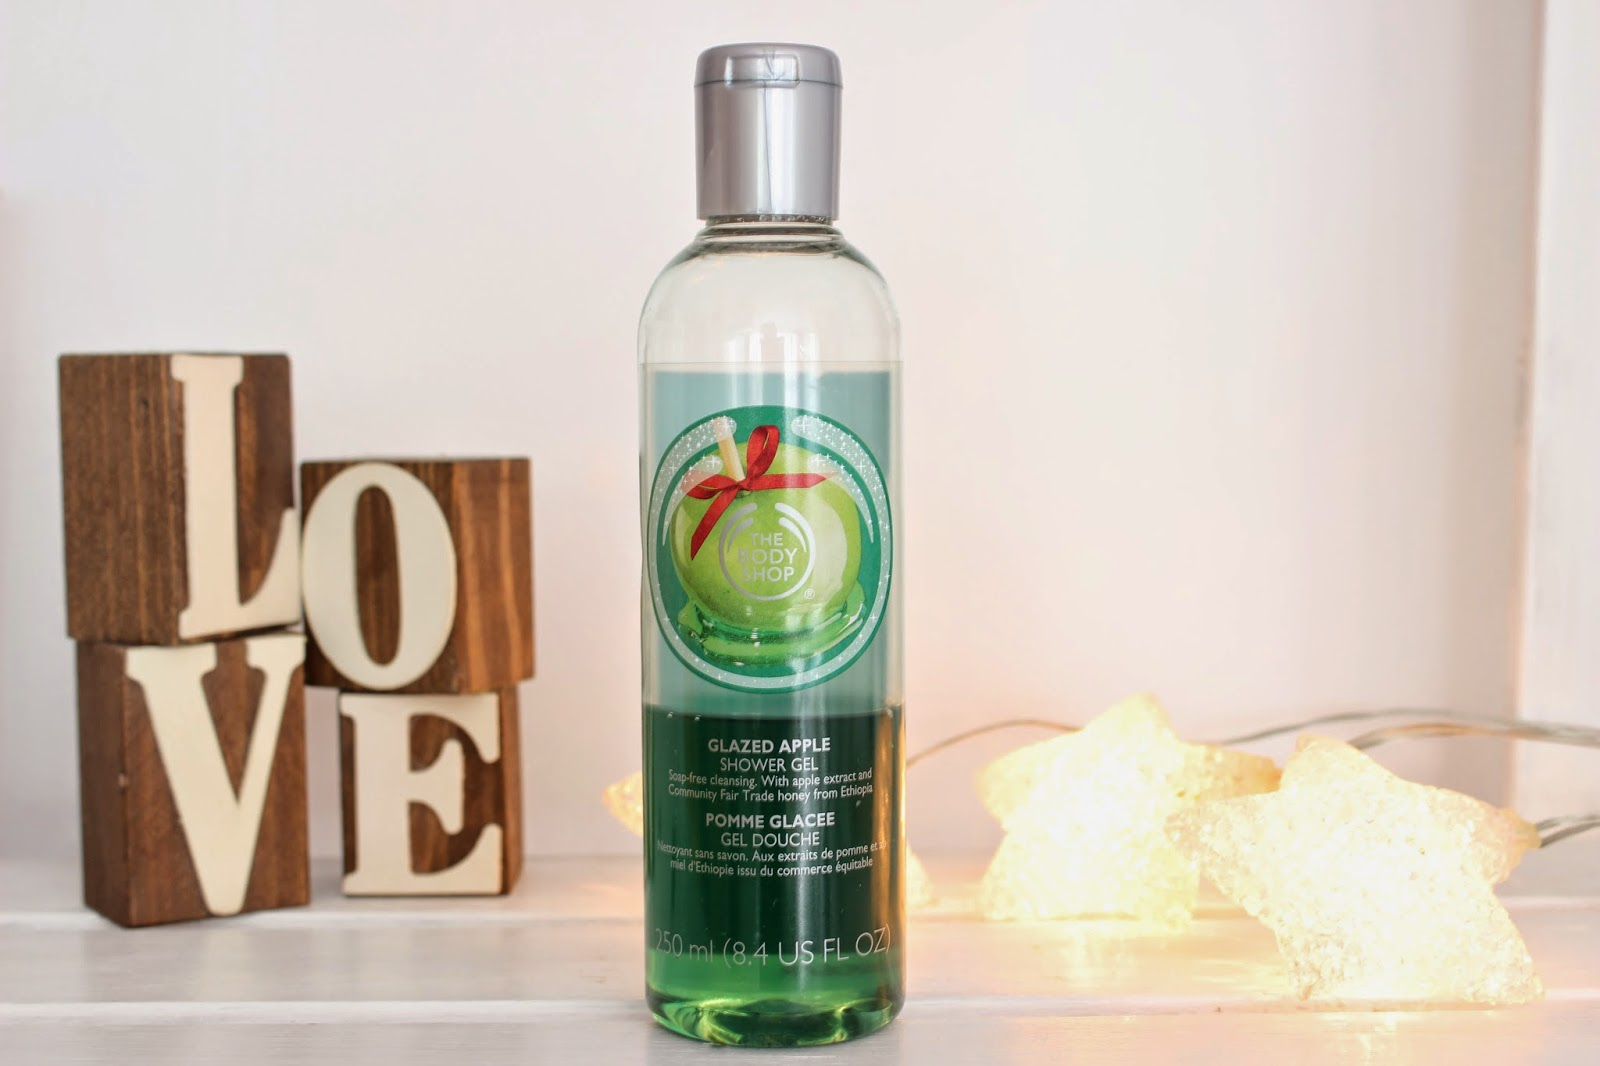 The Body Shop Glazed Apple Shower Gel